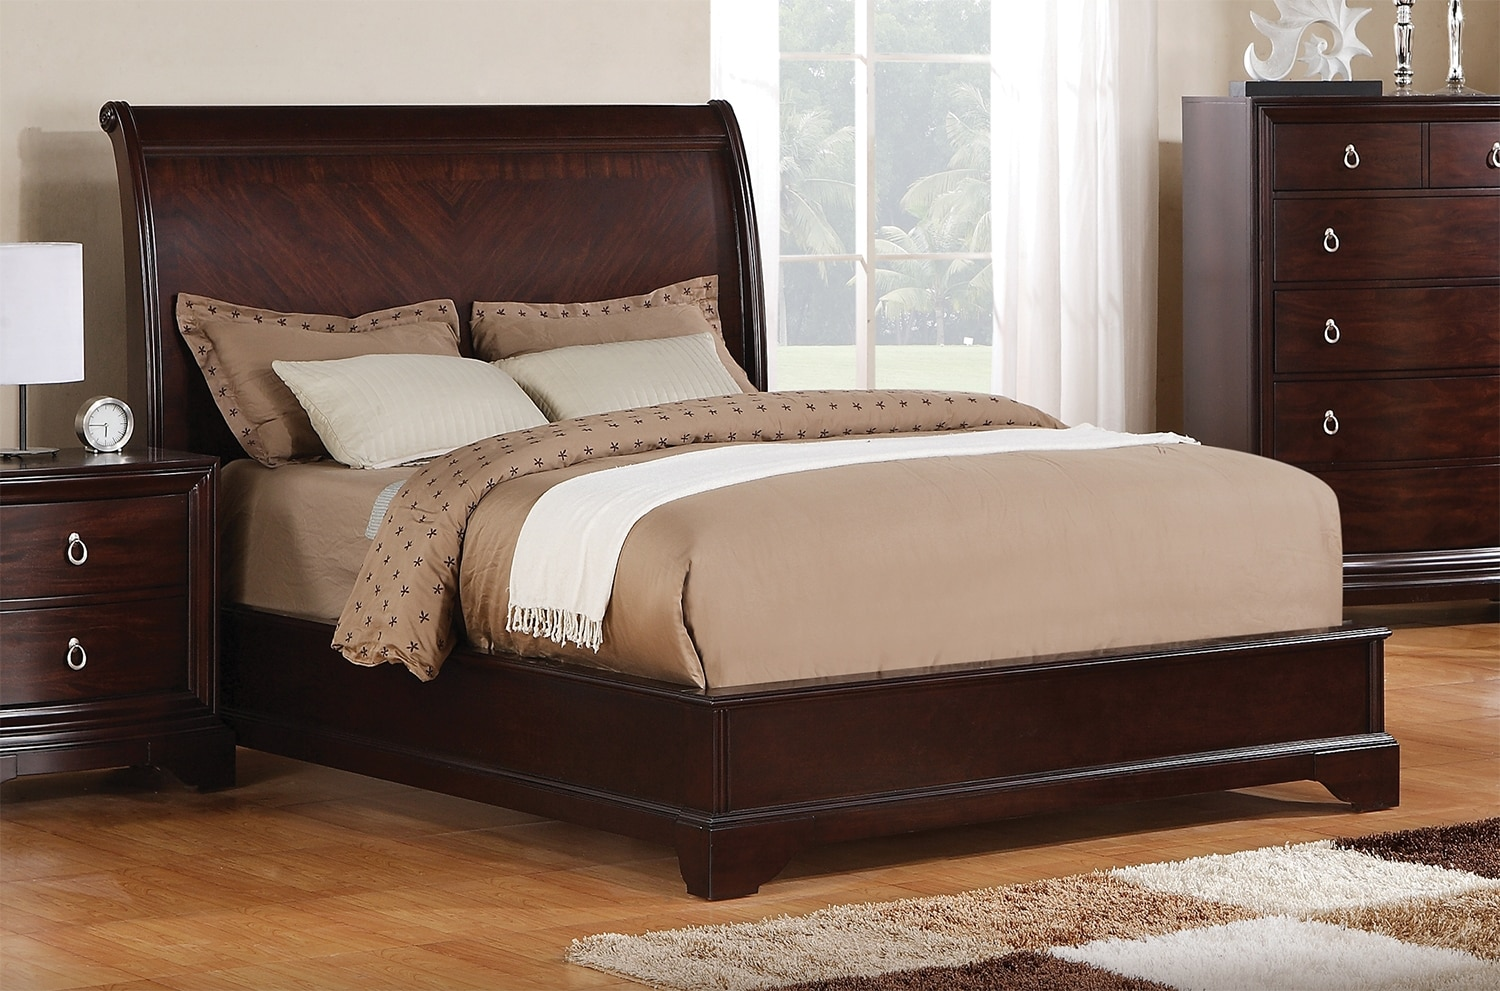 Bedroom Furniture - Noah King Bed - Dark Cherry